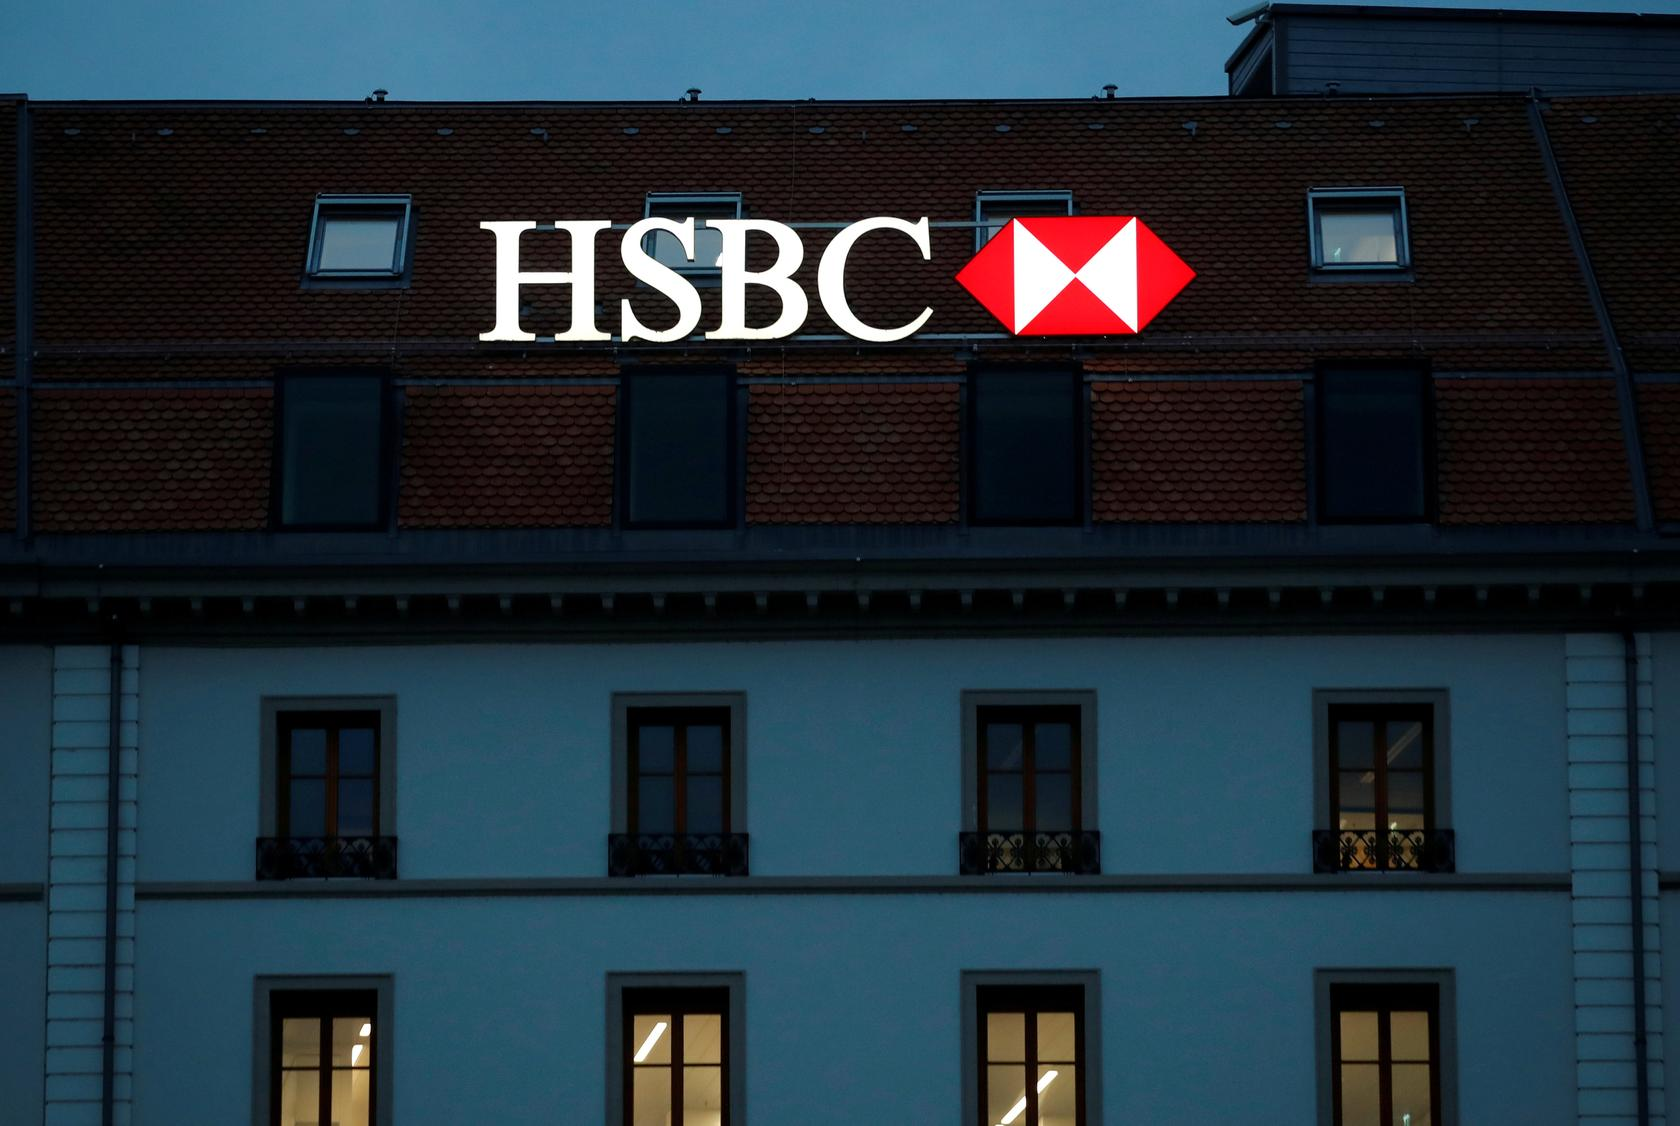 Exclusive - HSBC side-steps high-profile Qatar deals in Gulf